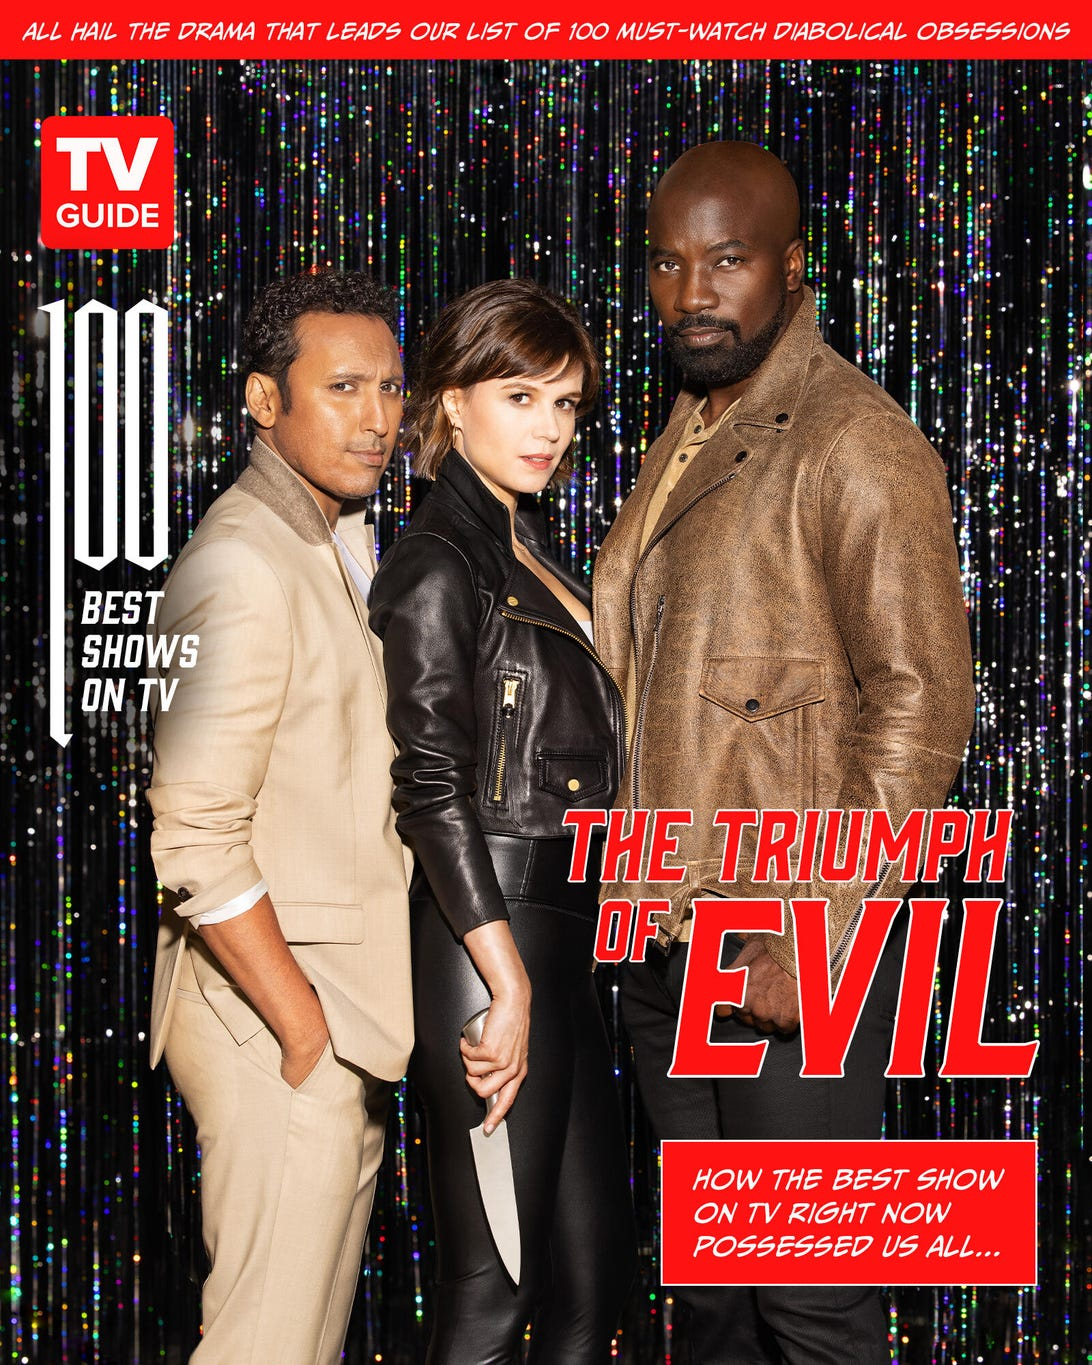 Evil for 100 Best Shows